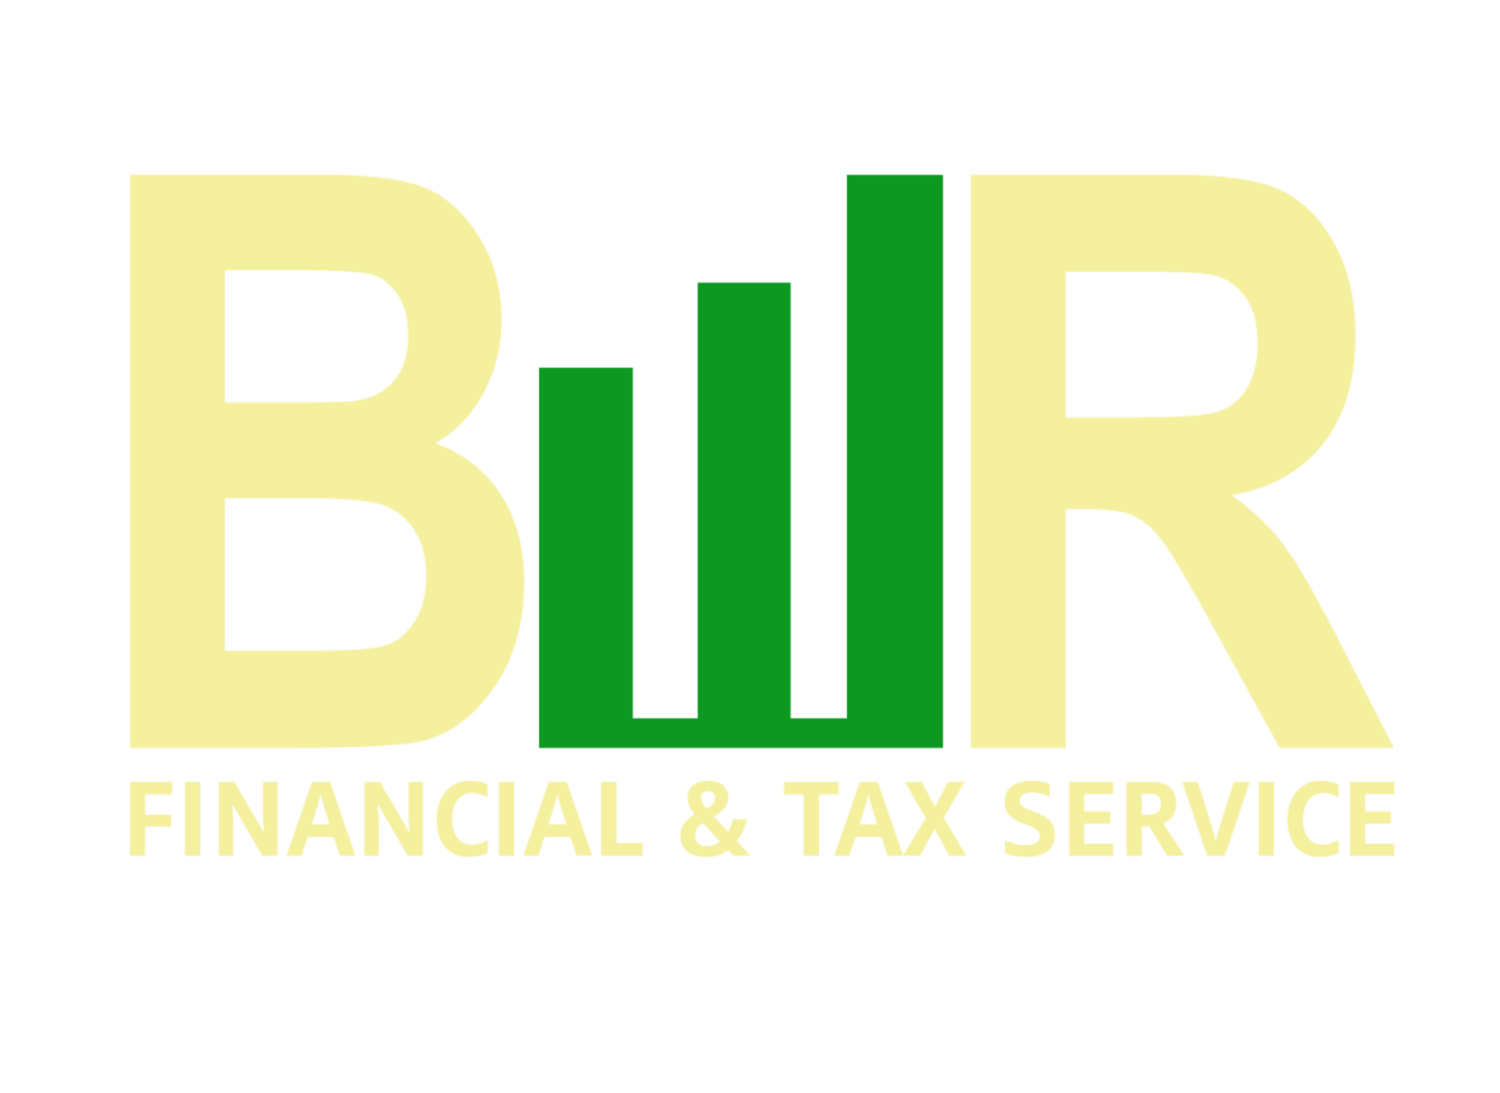 B.W.R. Financial and Tax Service